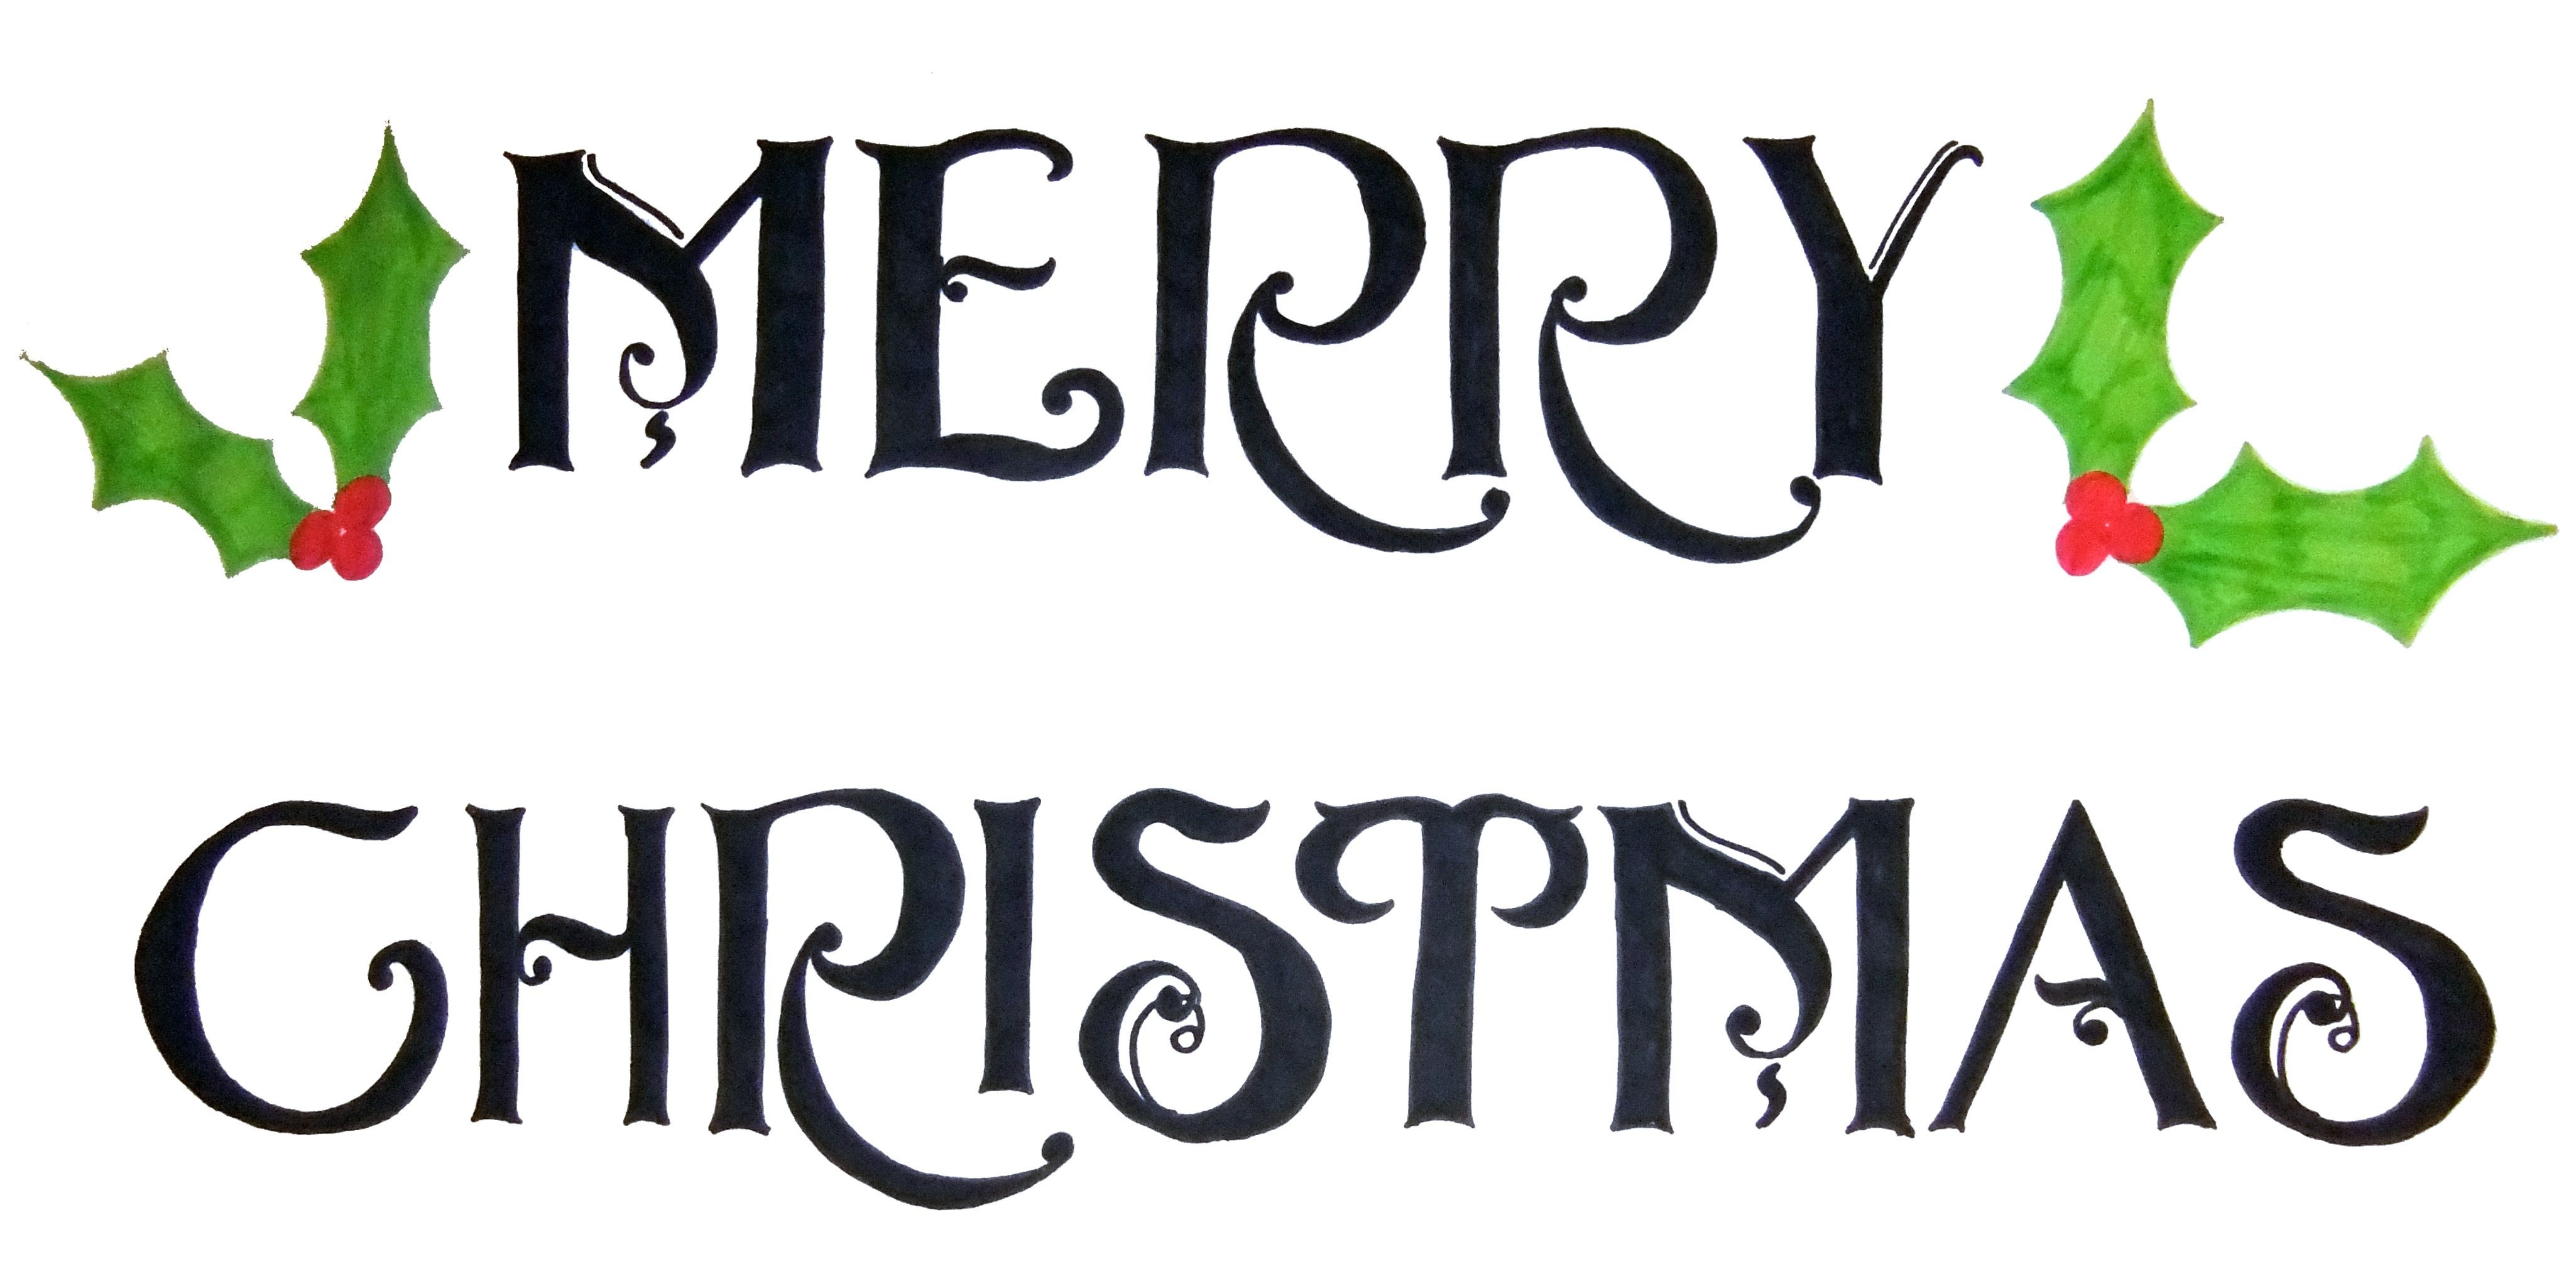 Images For > Merry Christmas Stencil Free Printable | Ideas For - Merry Christmas Stencil Free Printable